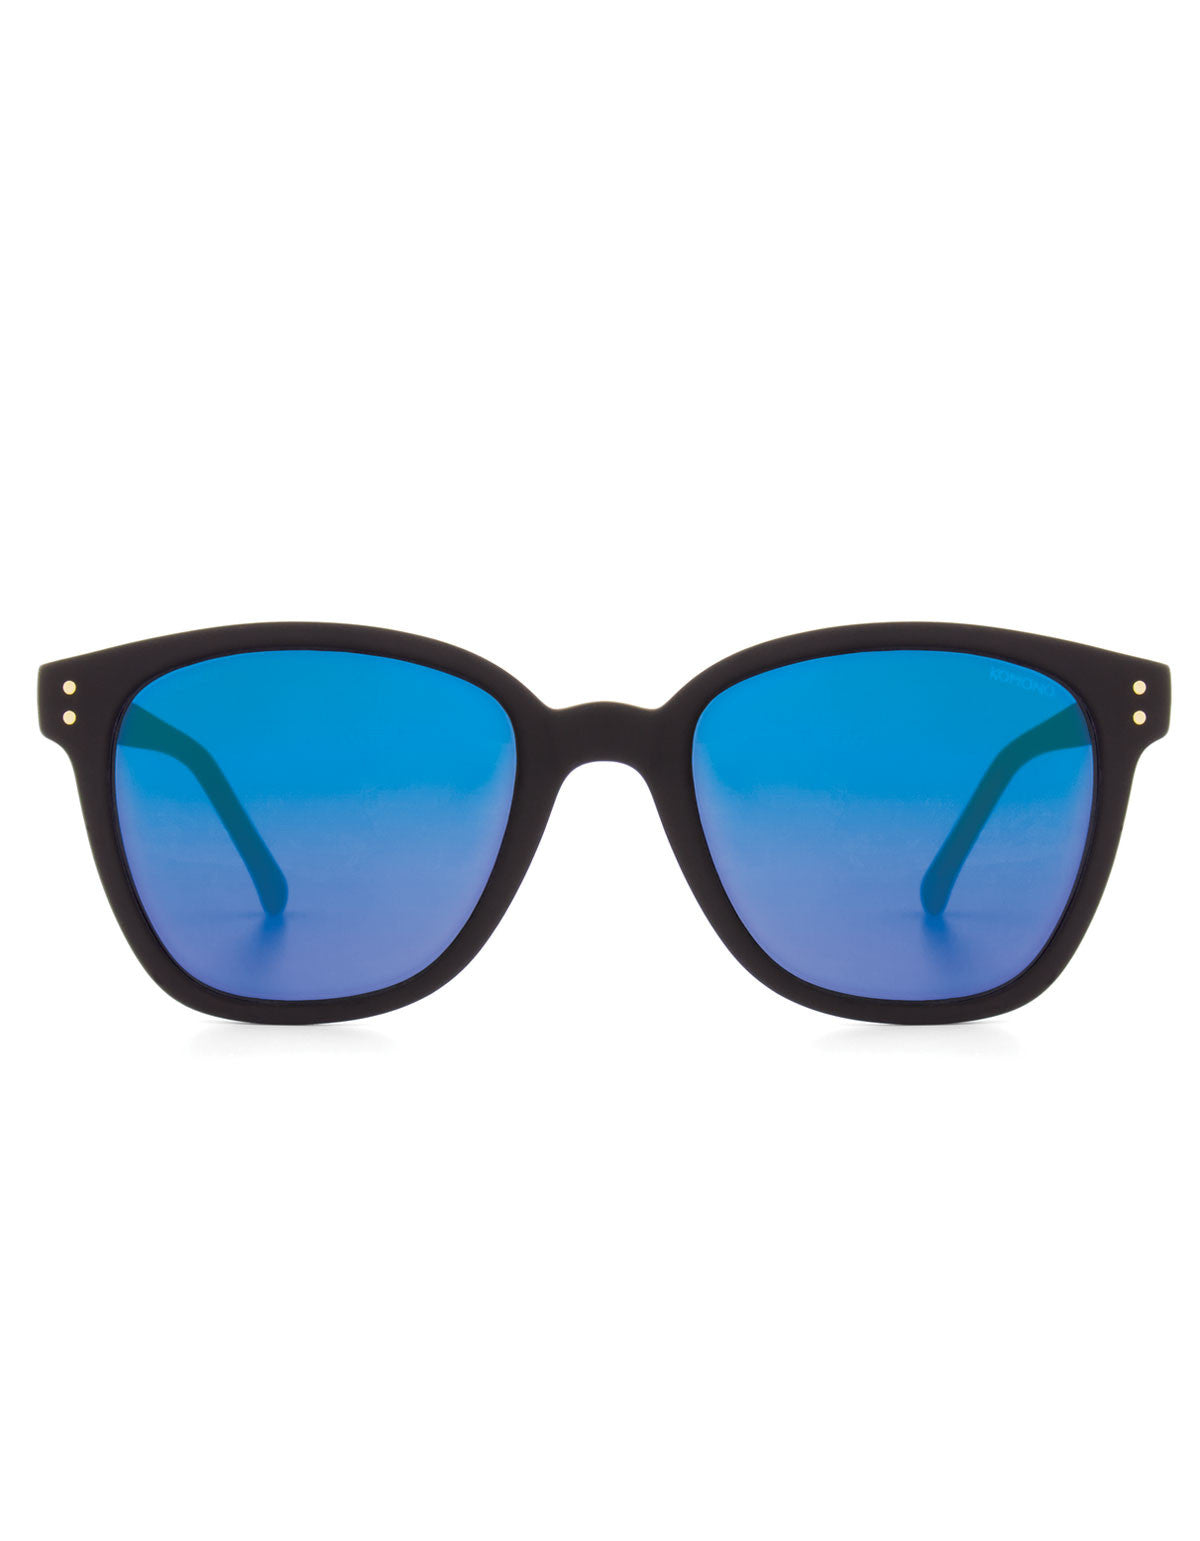 Komono Renee Sunglasses Black Rubber Blue Mirror - Still Life - 1